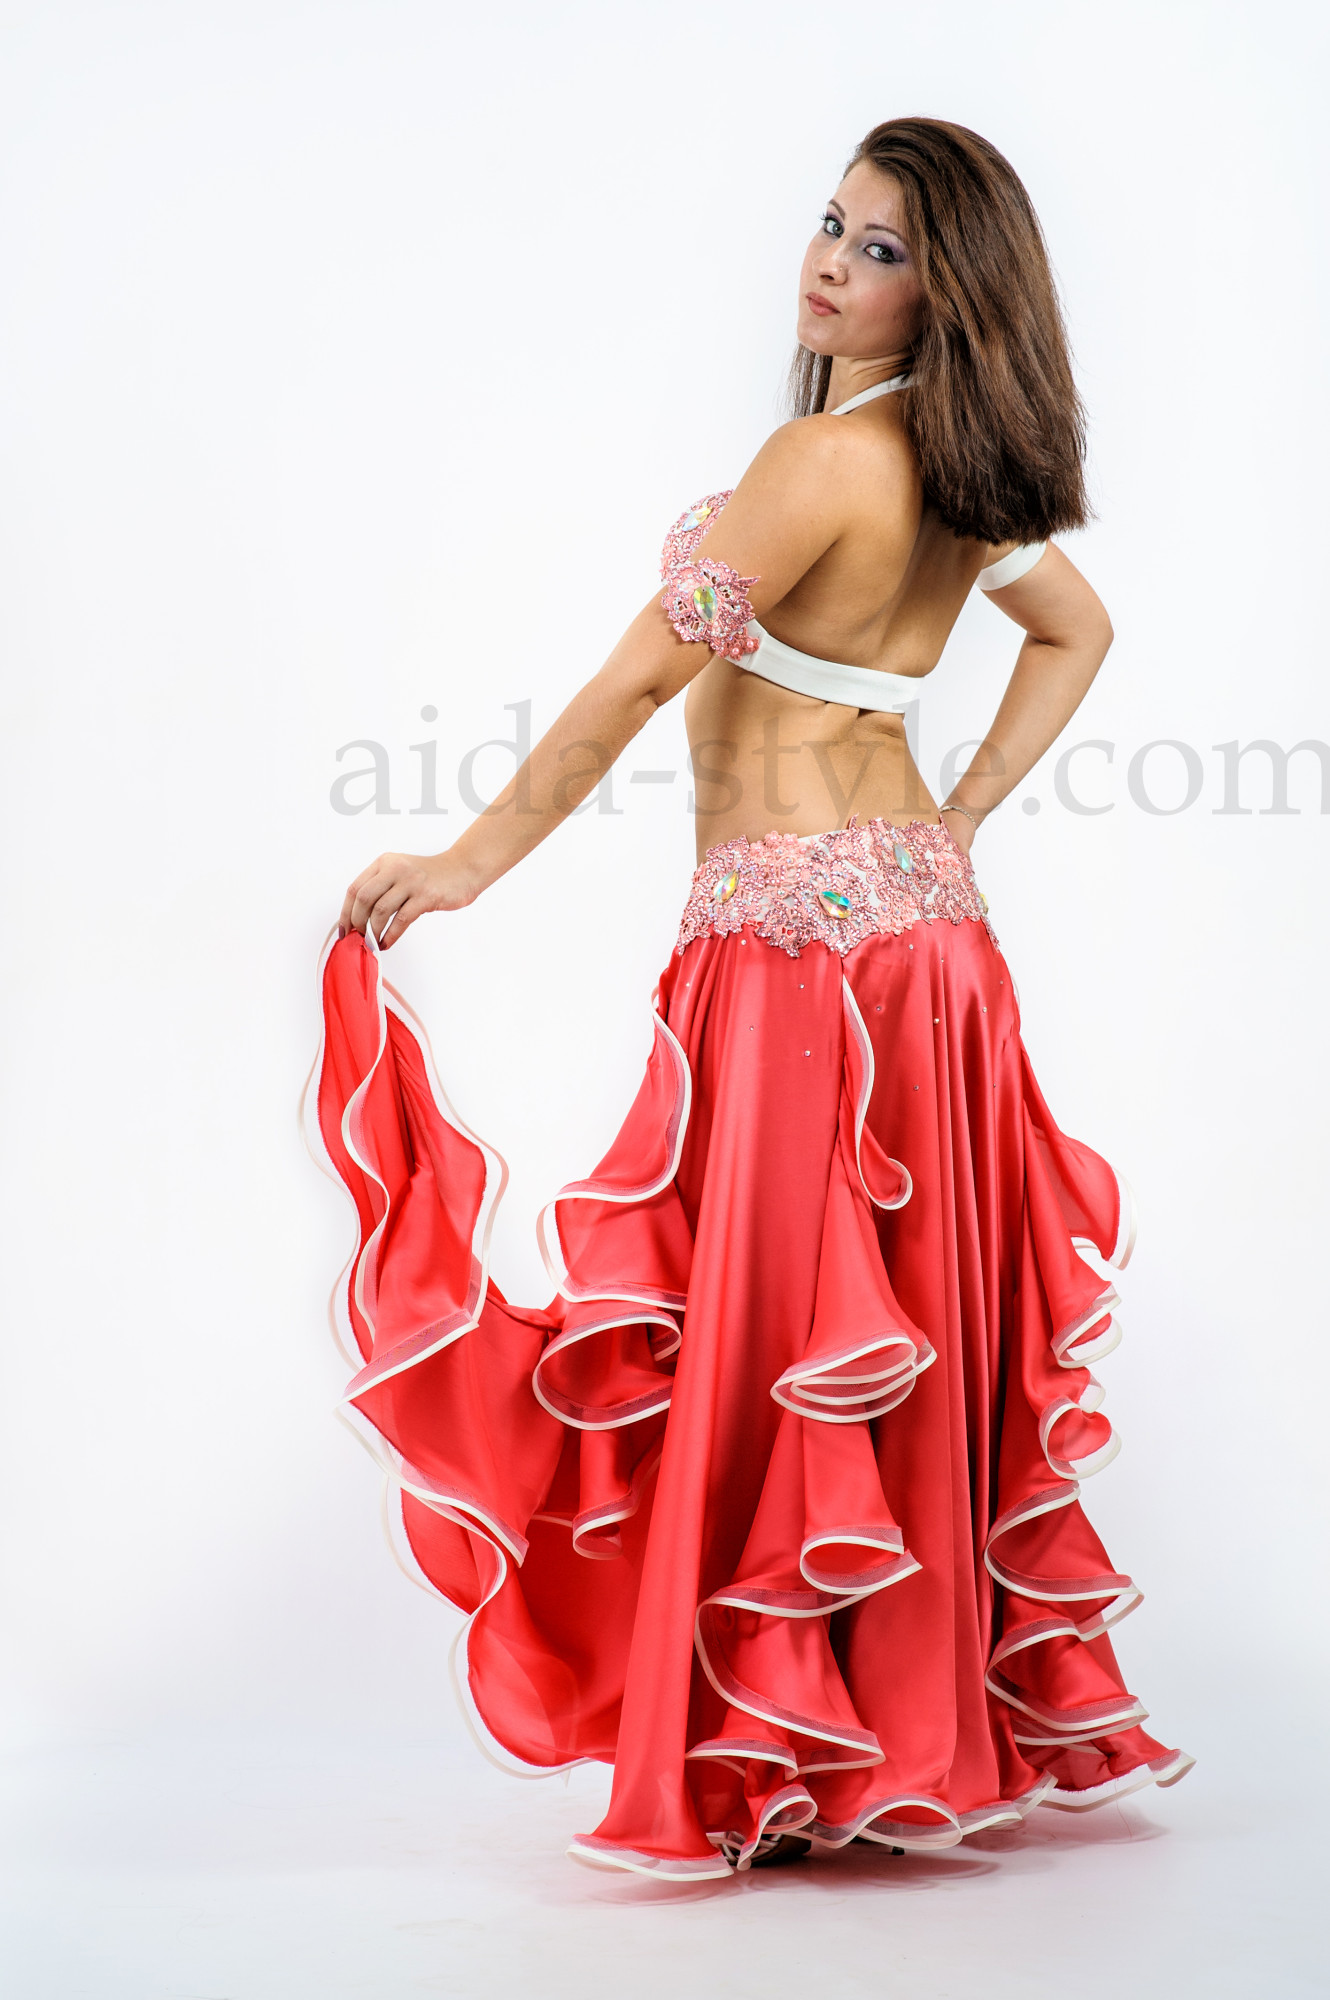 Peach custom made professional belly dance outfit with accessories and ruffls on skirt